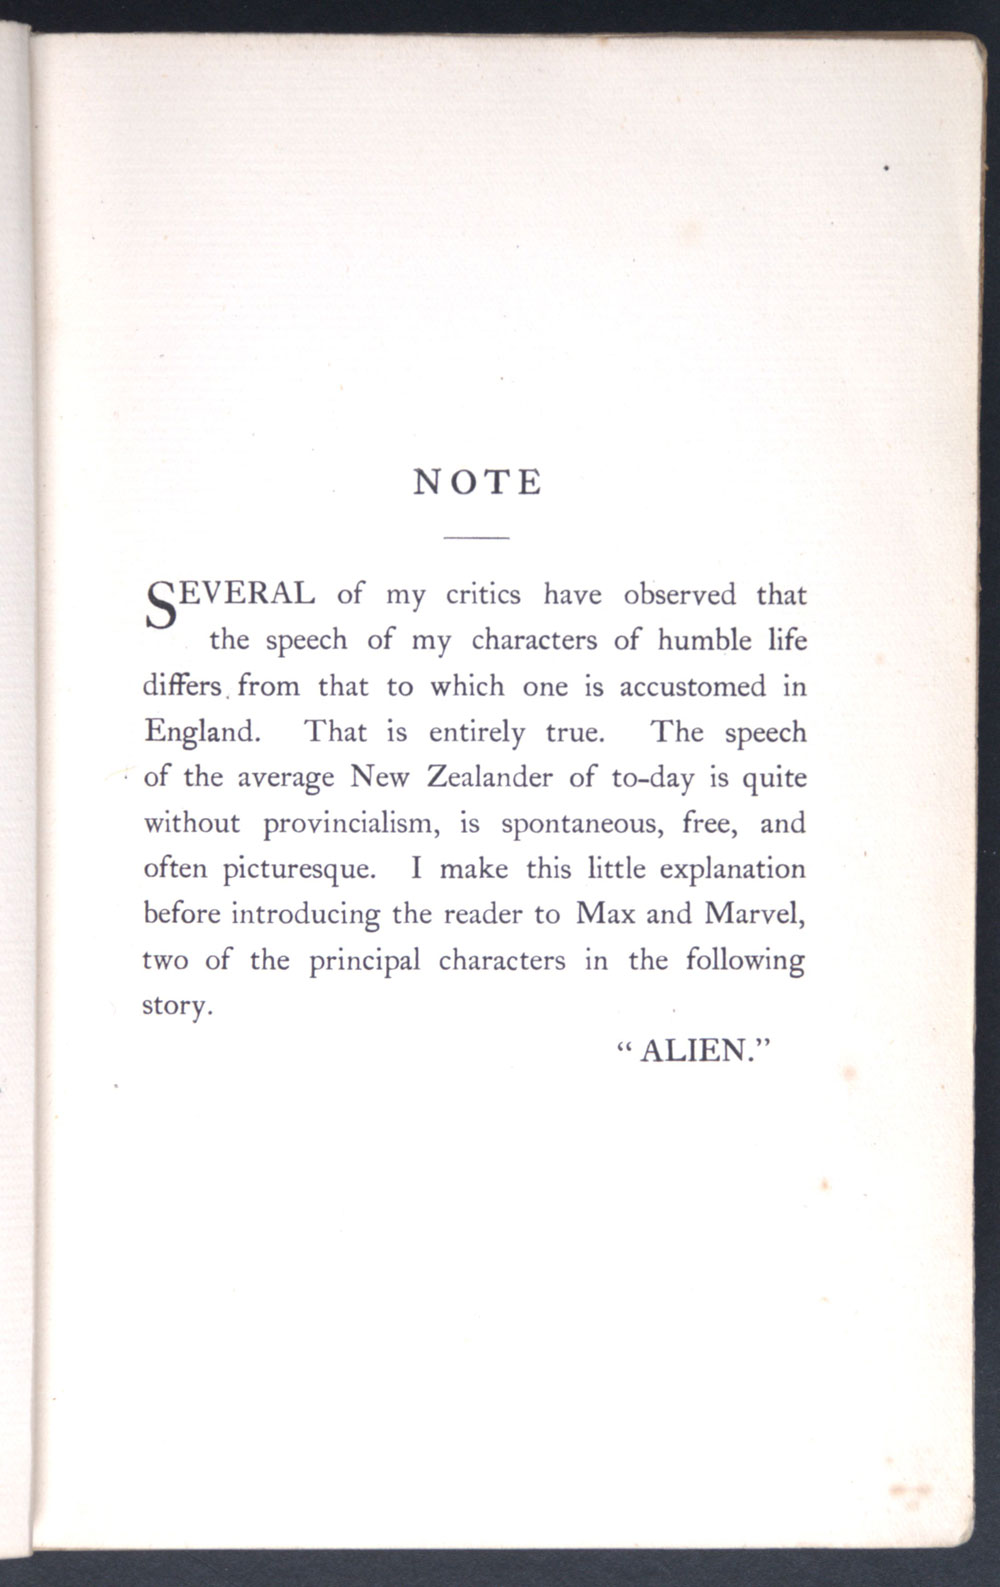 Alien. <em>The untold half</em>. London: Hutchinson, 1899.